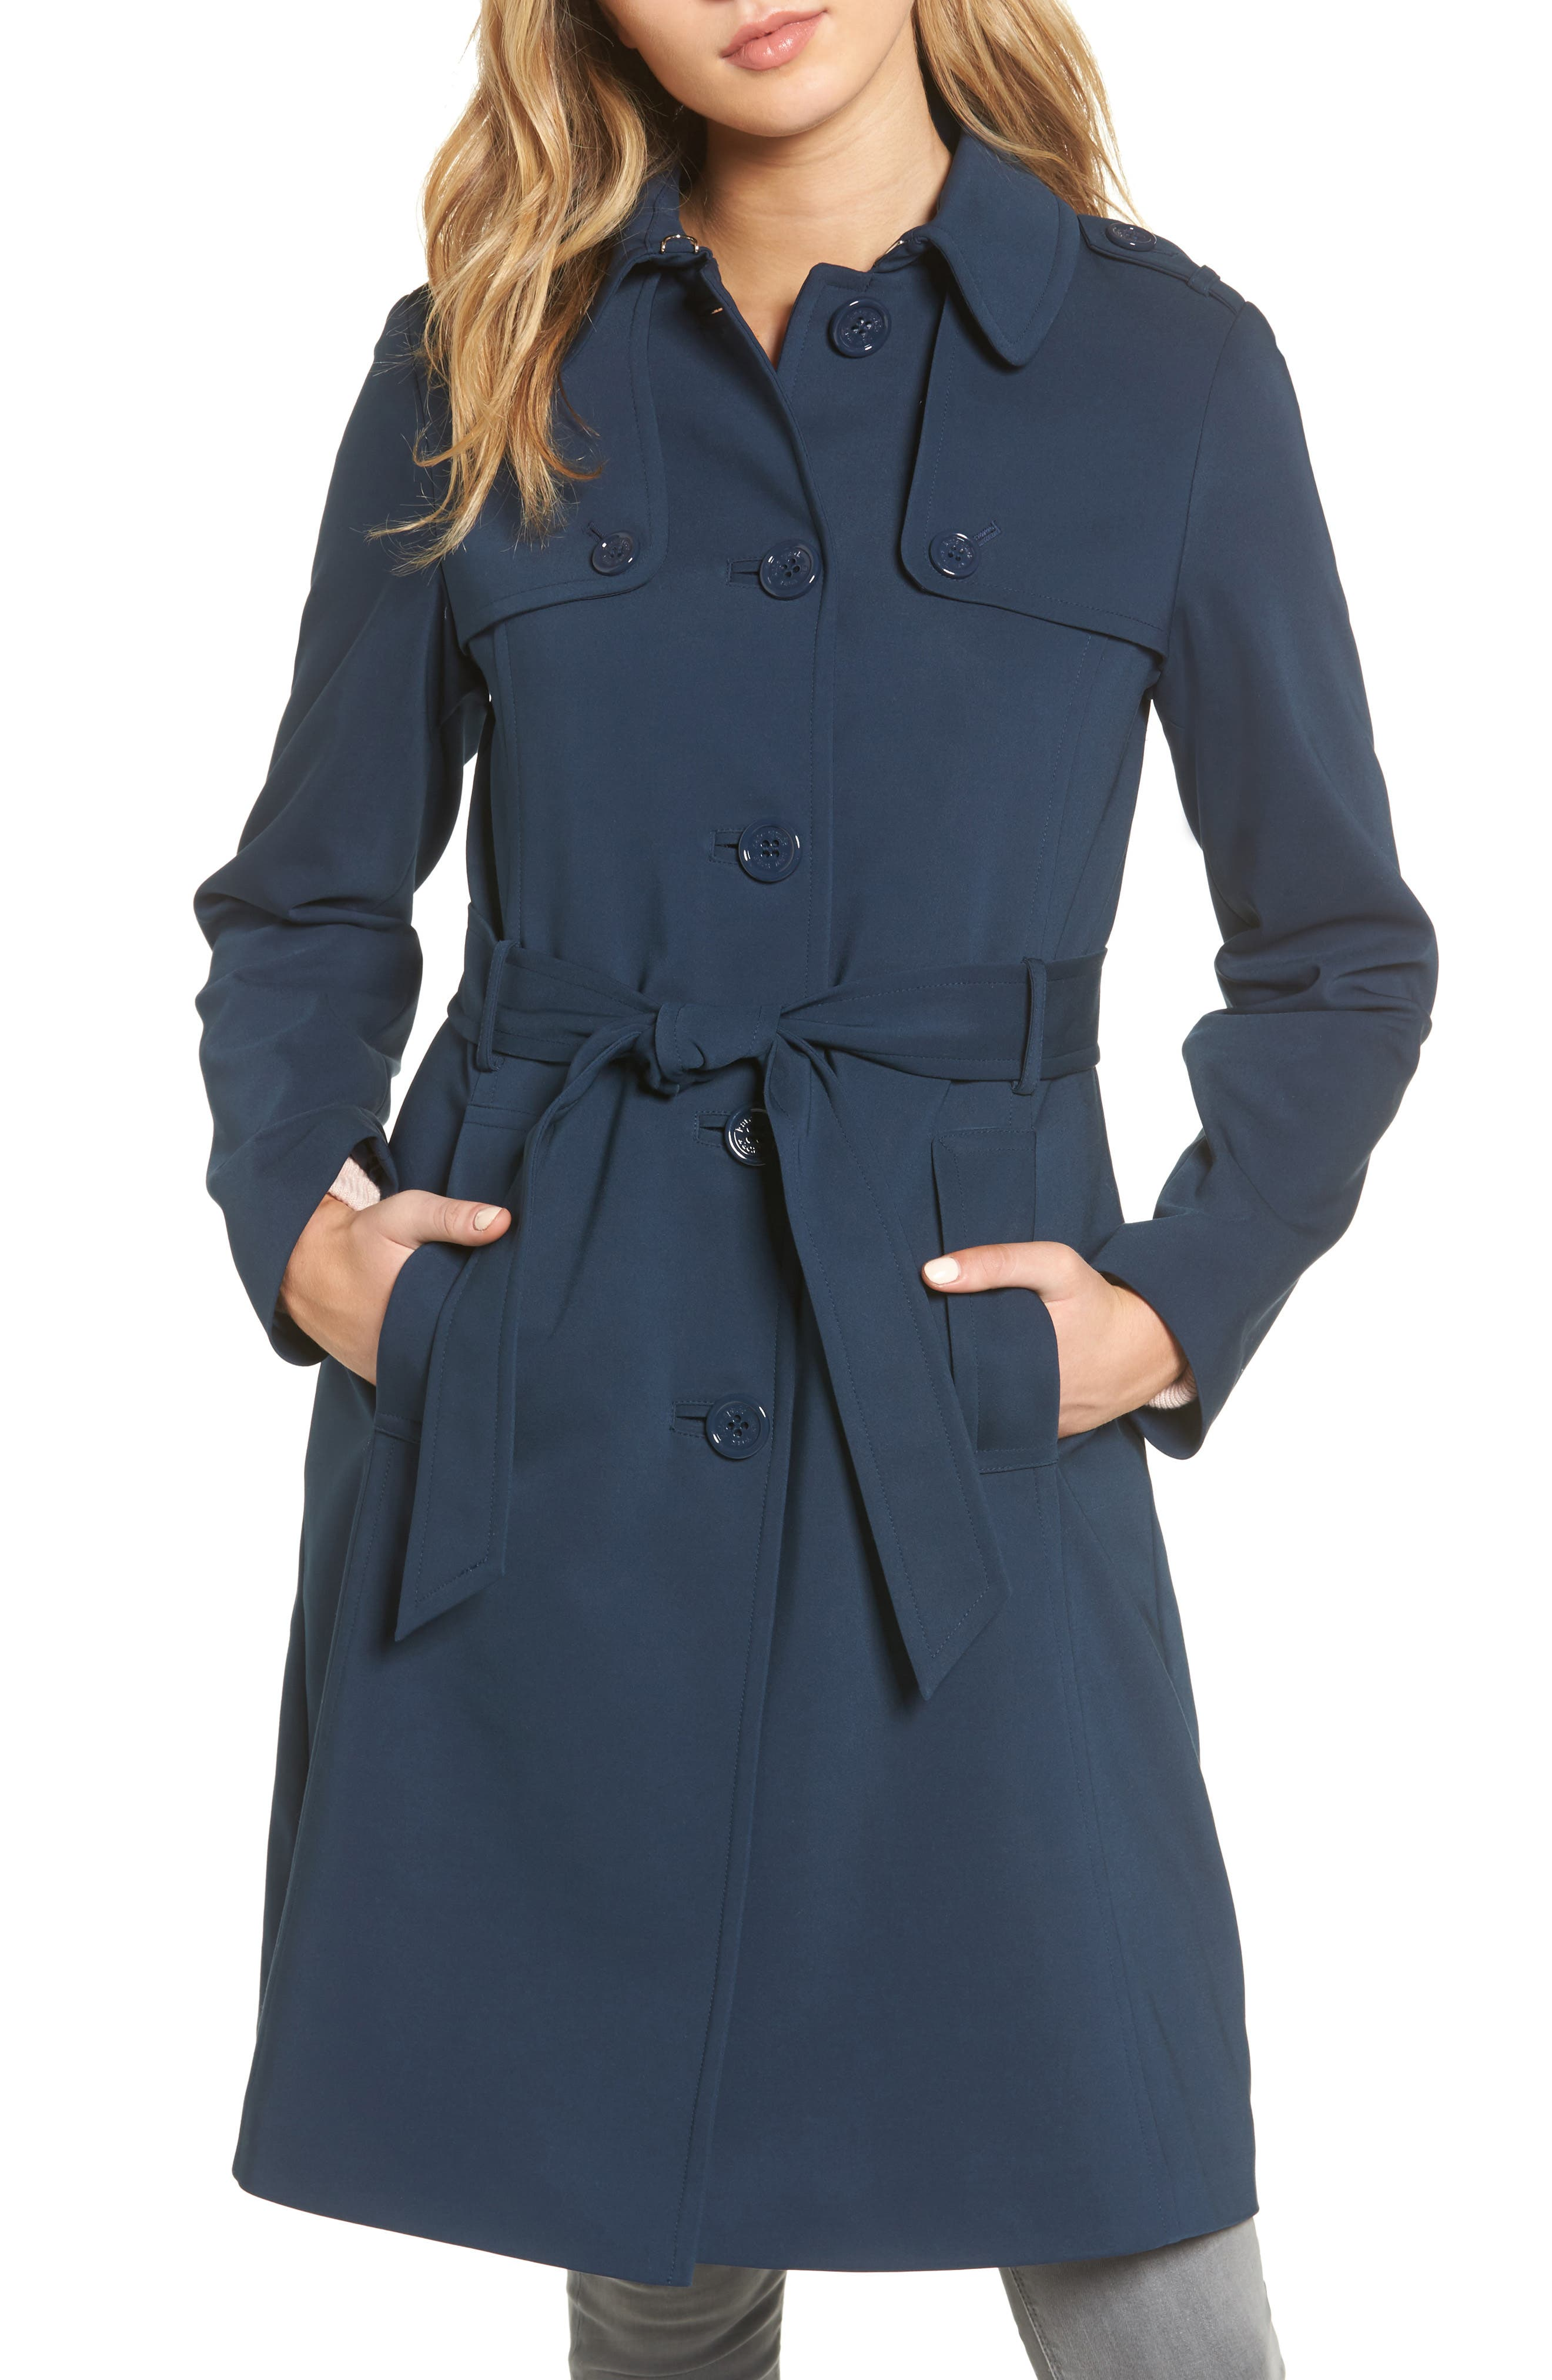 Alternate Image 1 Selected - kate spade new york 3-in-1 trench coat